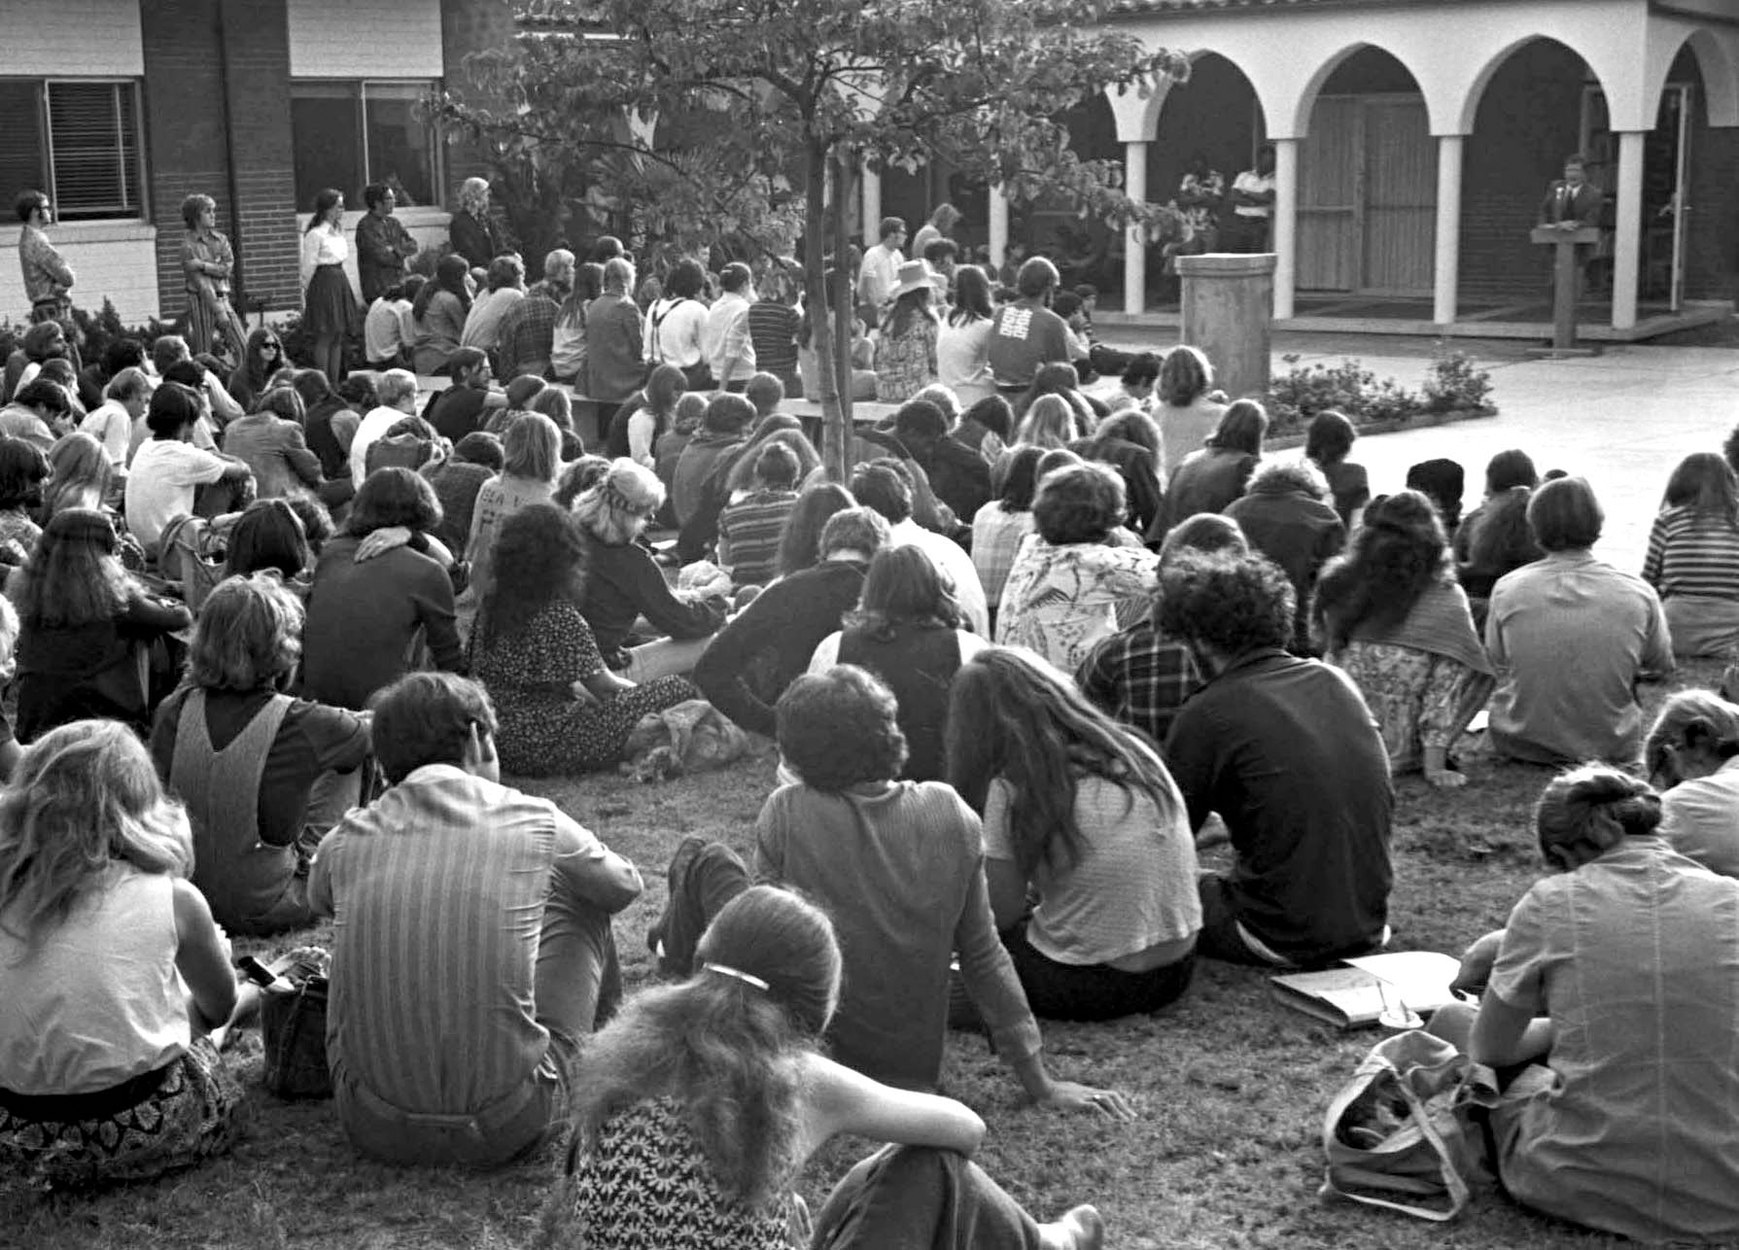 CalArts president Robert Corrigan addresses students on opening day at the Villa Cabrini campus in Burbank, 1970. Photo: Barry Hyams. Courtesy of the California Institute of the Arts Archive.